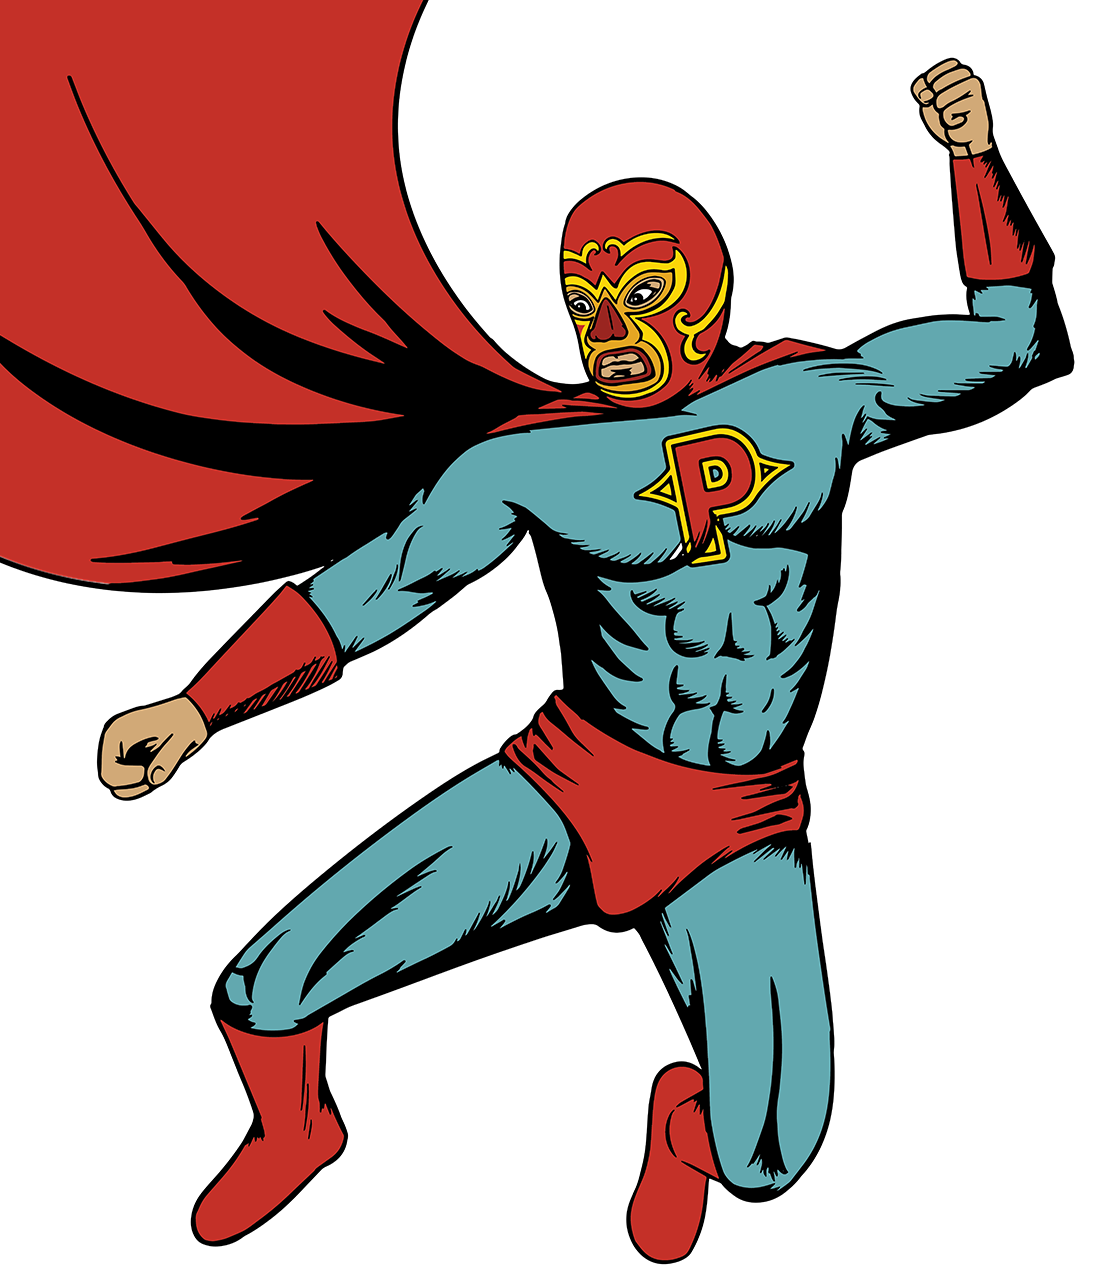 https://www.myperios.com/wp-content/uploads/2020/10/Main-Menu-Desctop-Luchador.png